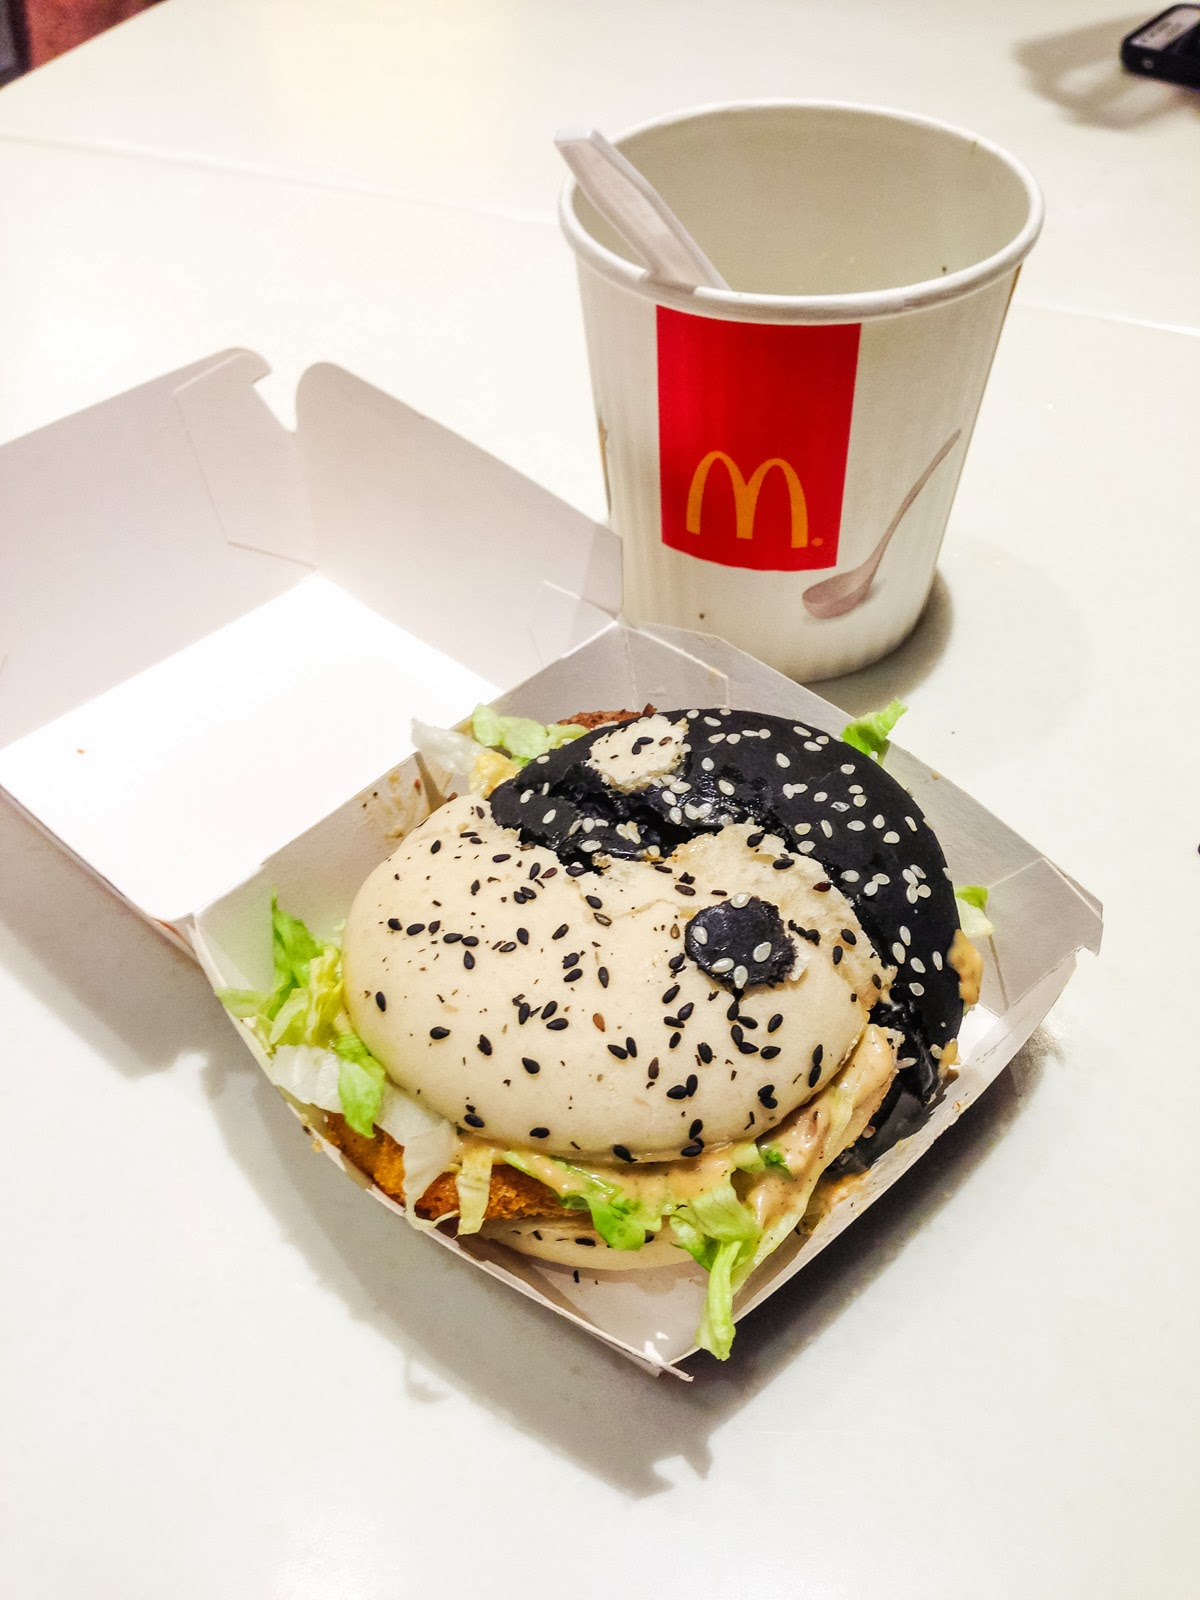 http://www.thatfoodcray.com/2013/05/31/mcdonalds-cray-black-white-burger/